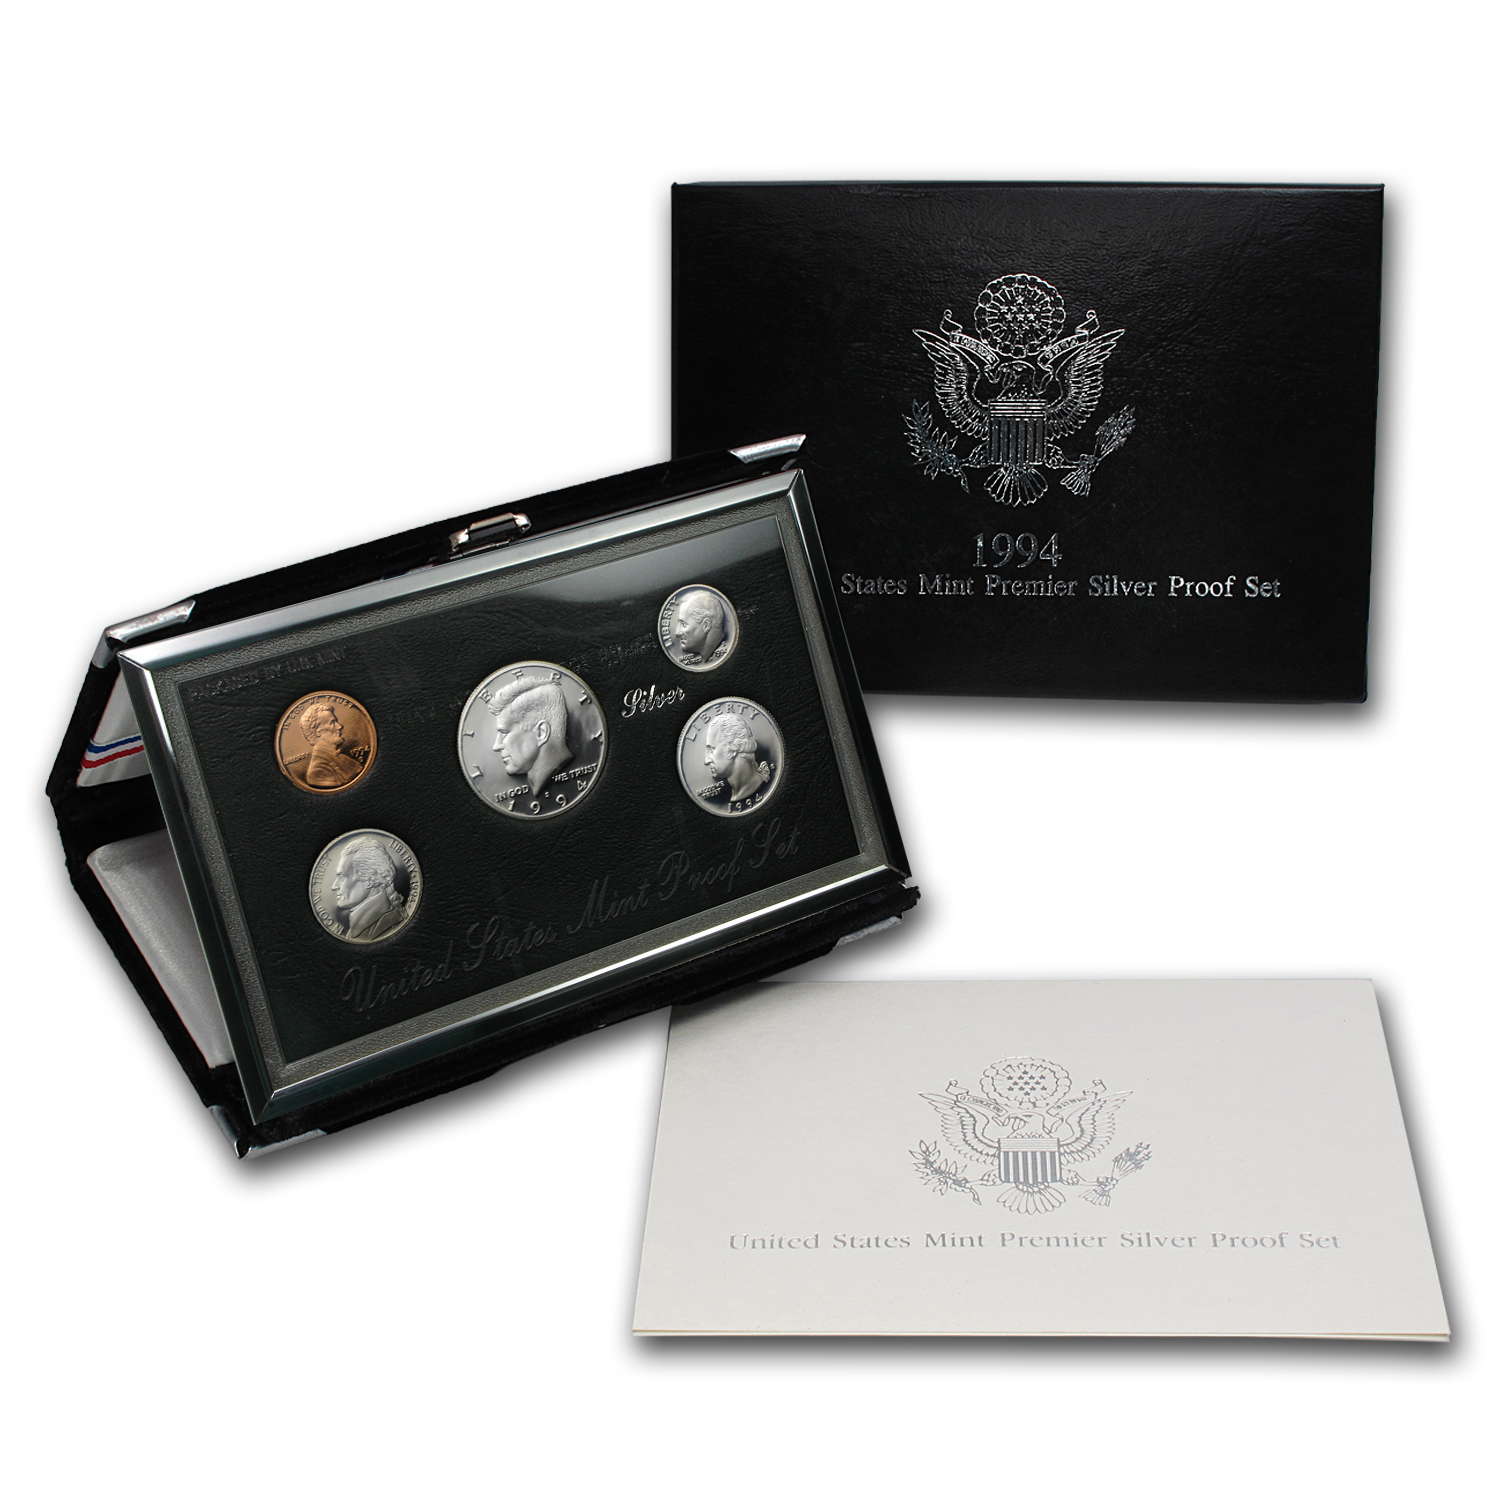 1994 Premier Silver Proof Set